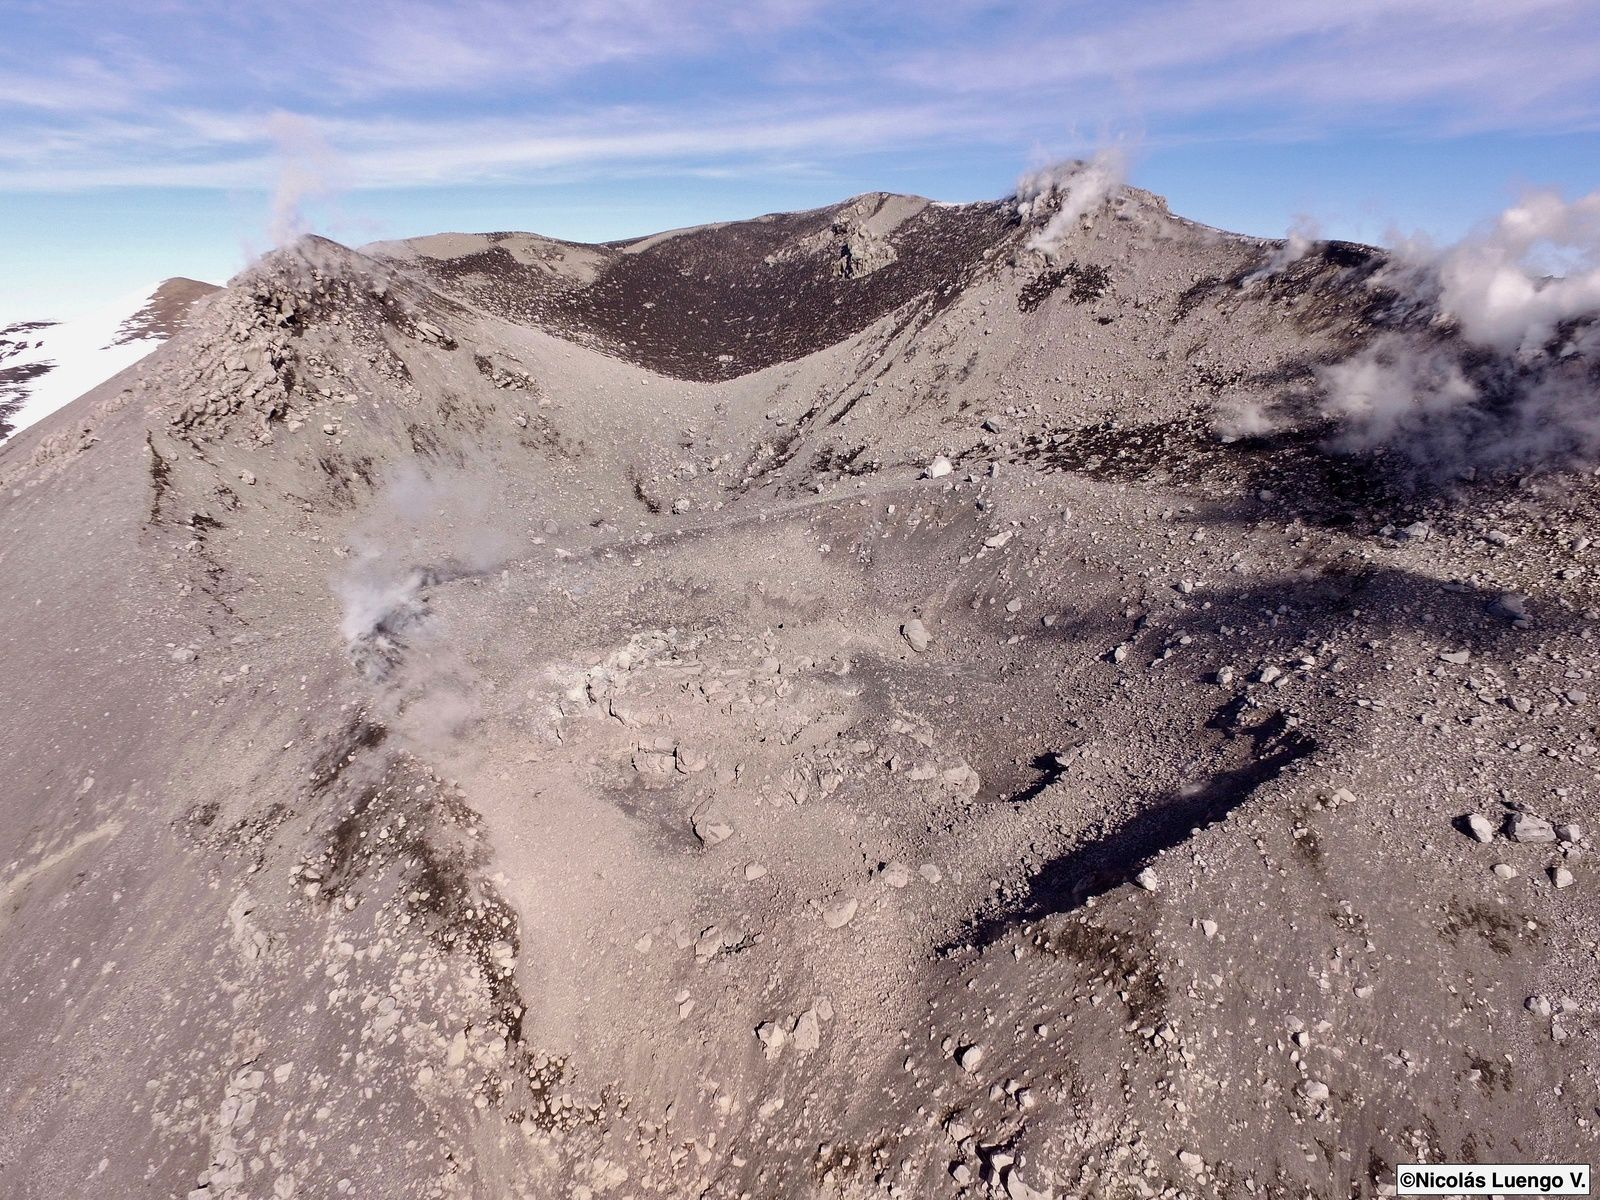 Nevados de Chillan - new appearance of the crater Nicanor and the upper flanks dotted with blocks - photos by drone of Nicolas Luengo / Volcanologia Chile 11.08.2019